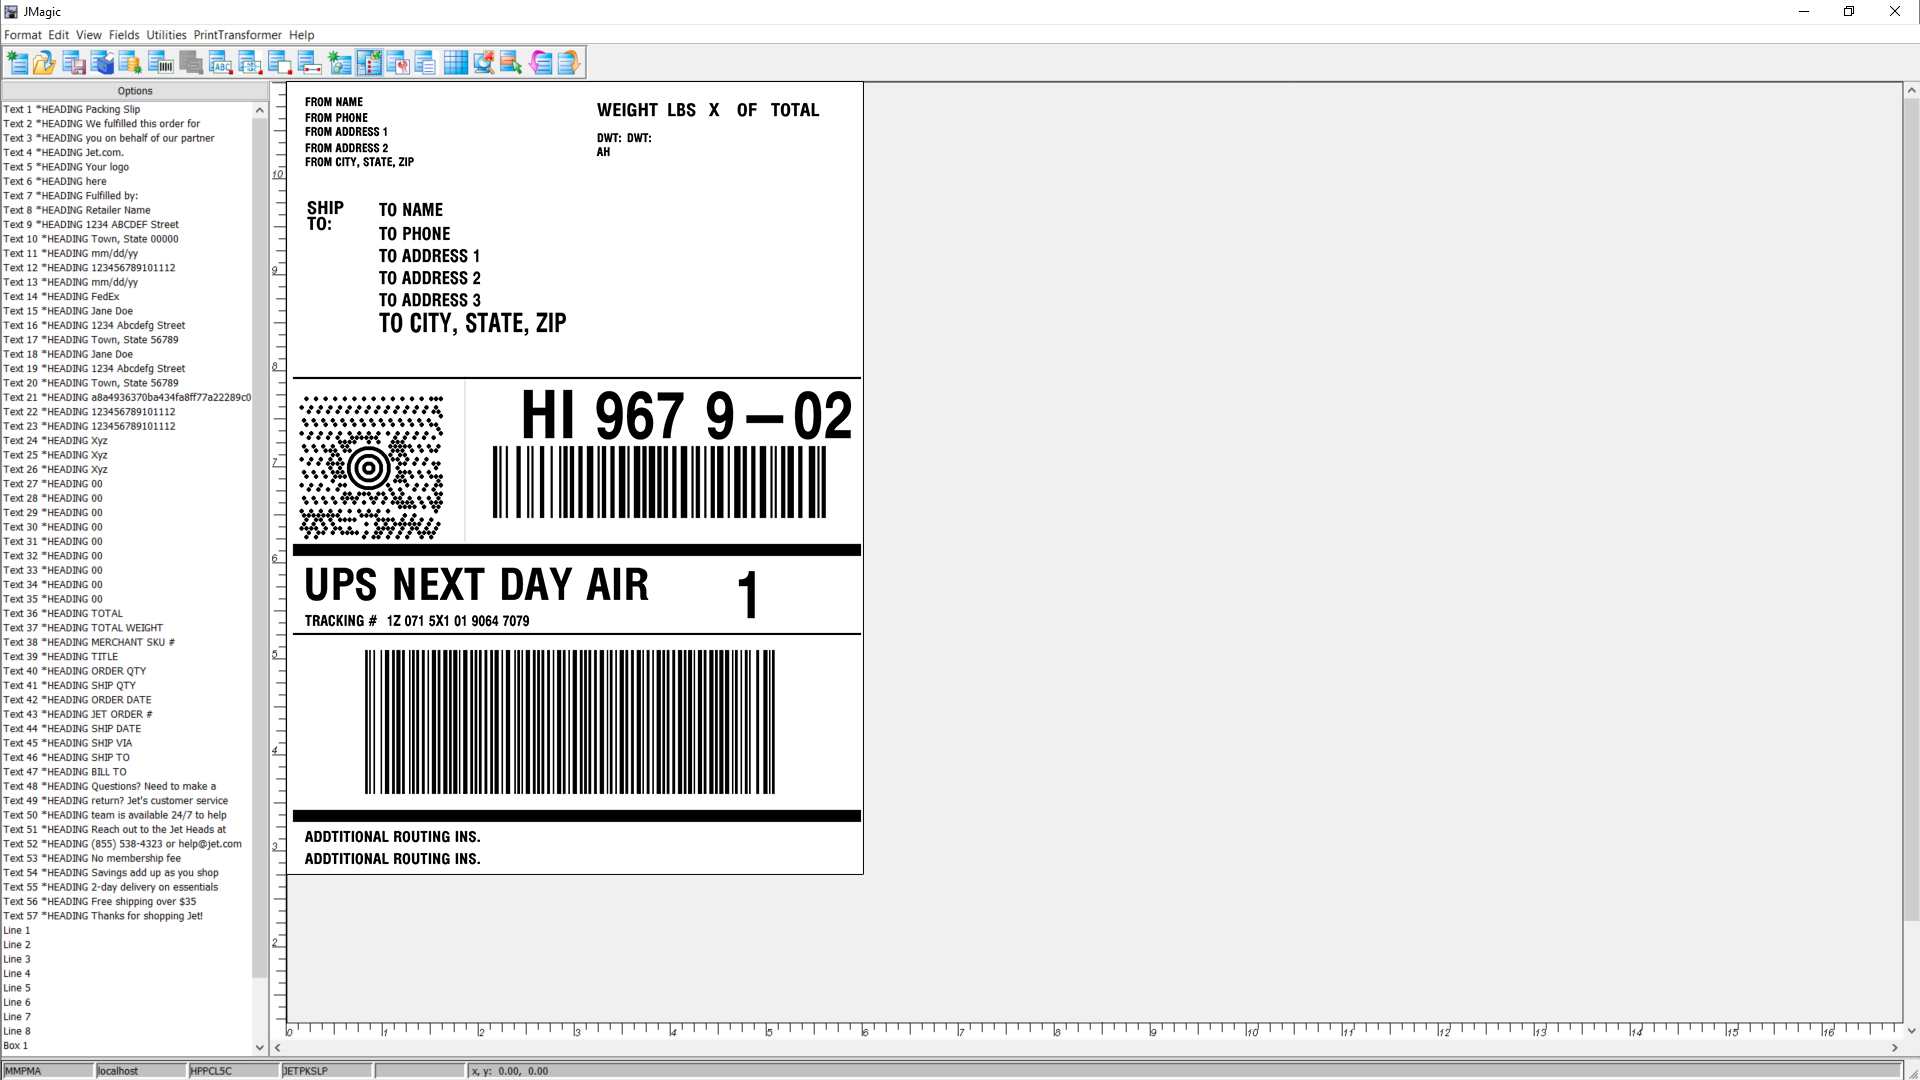 MarkMagic barcode labeling software makes it easy to design and print your shipping labels.